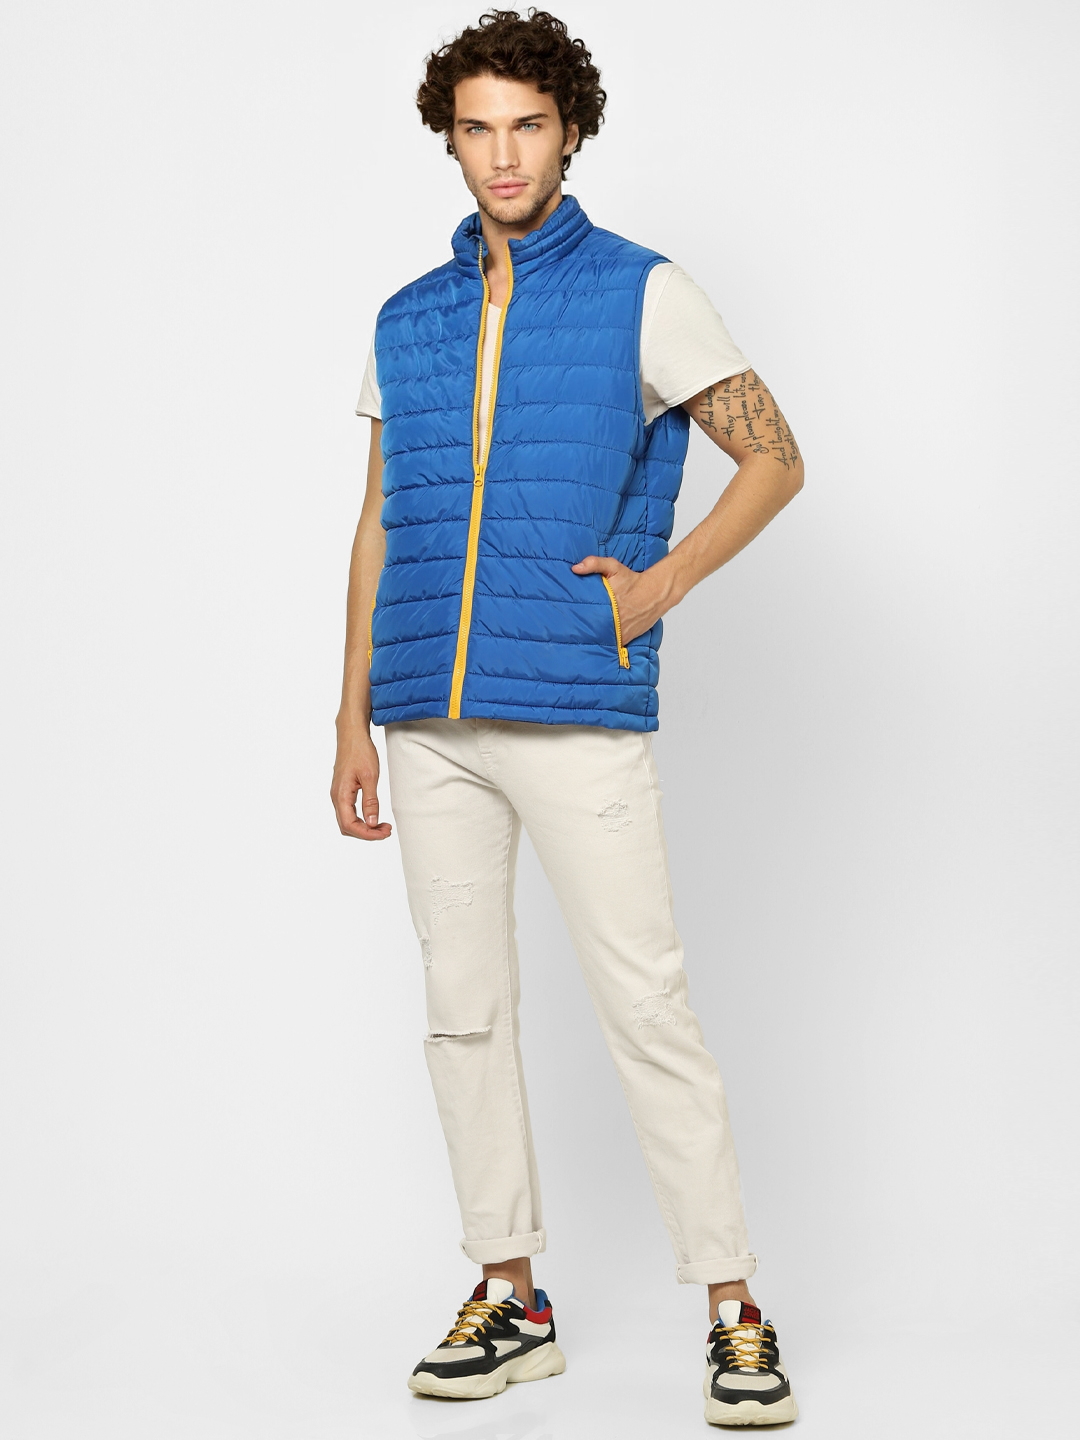 Blue Zip Up Puffer Jacket